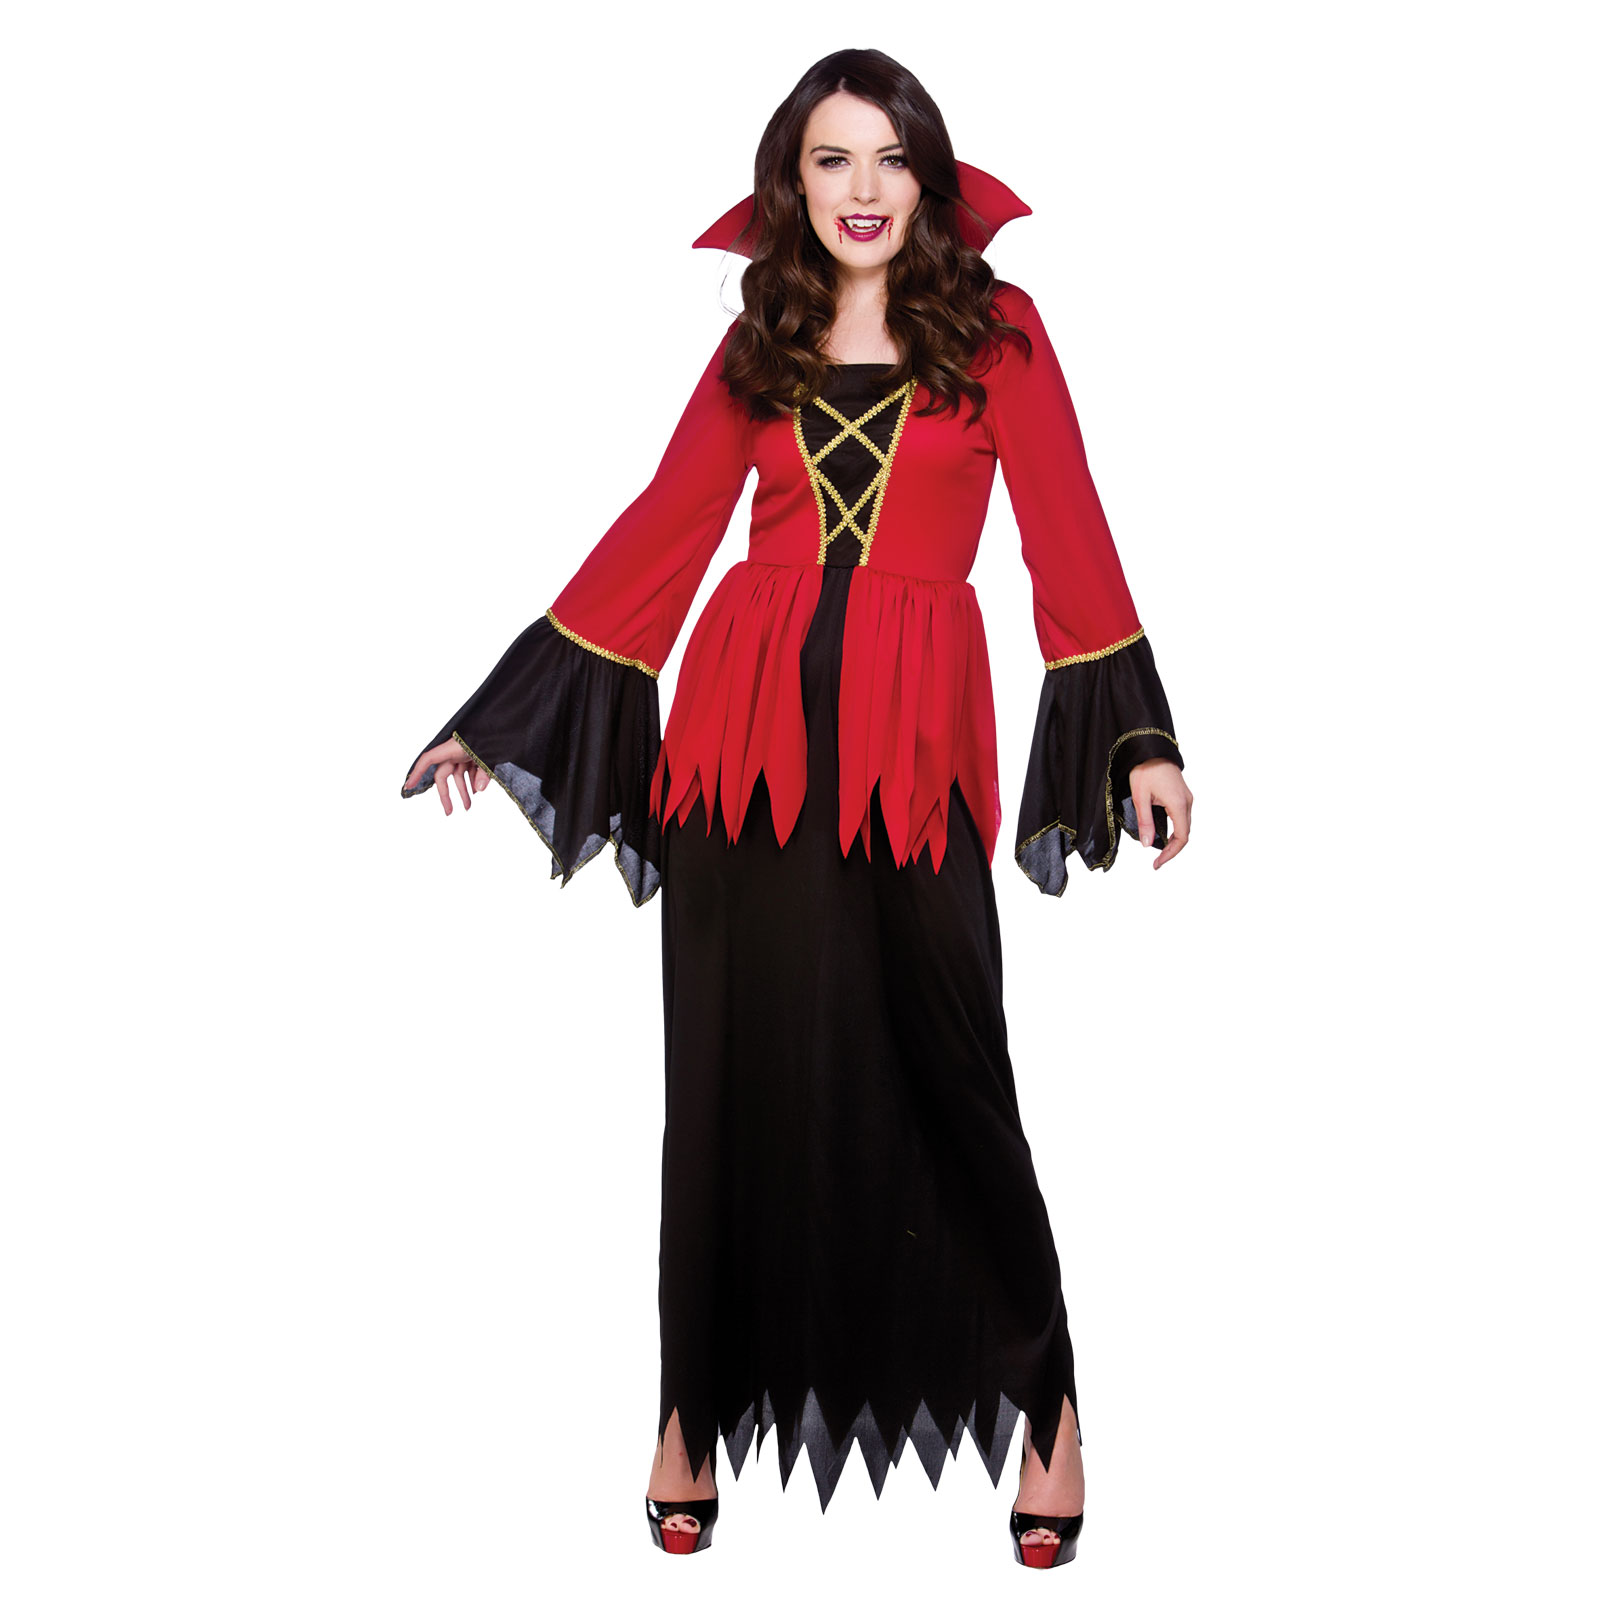 Vampire dress up images woman